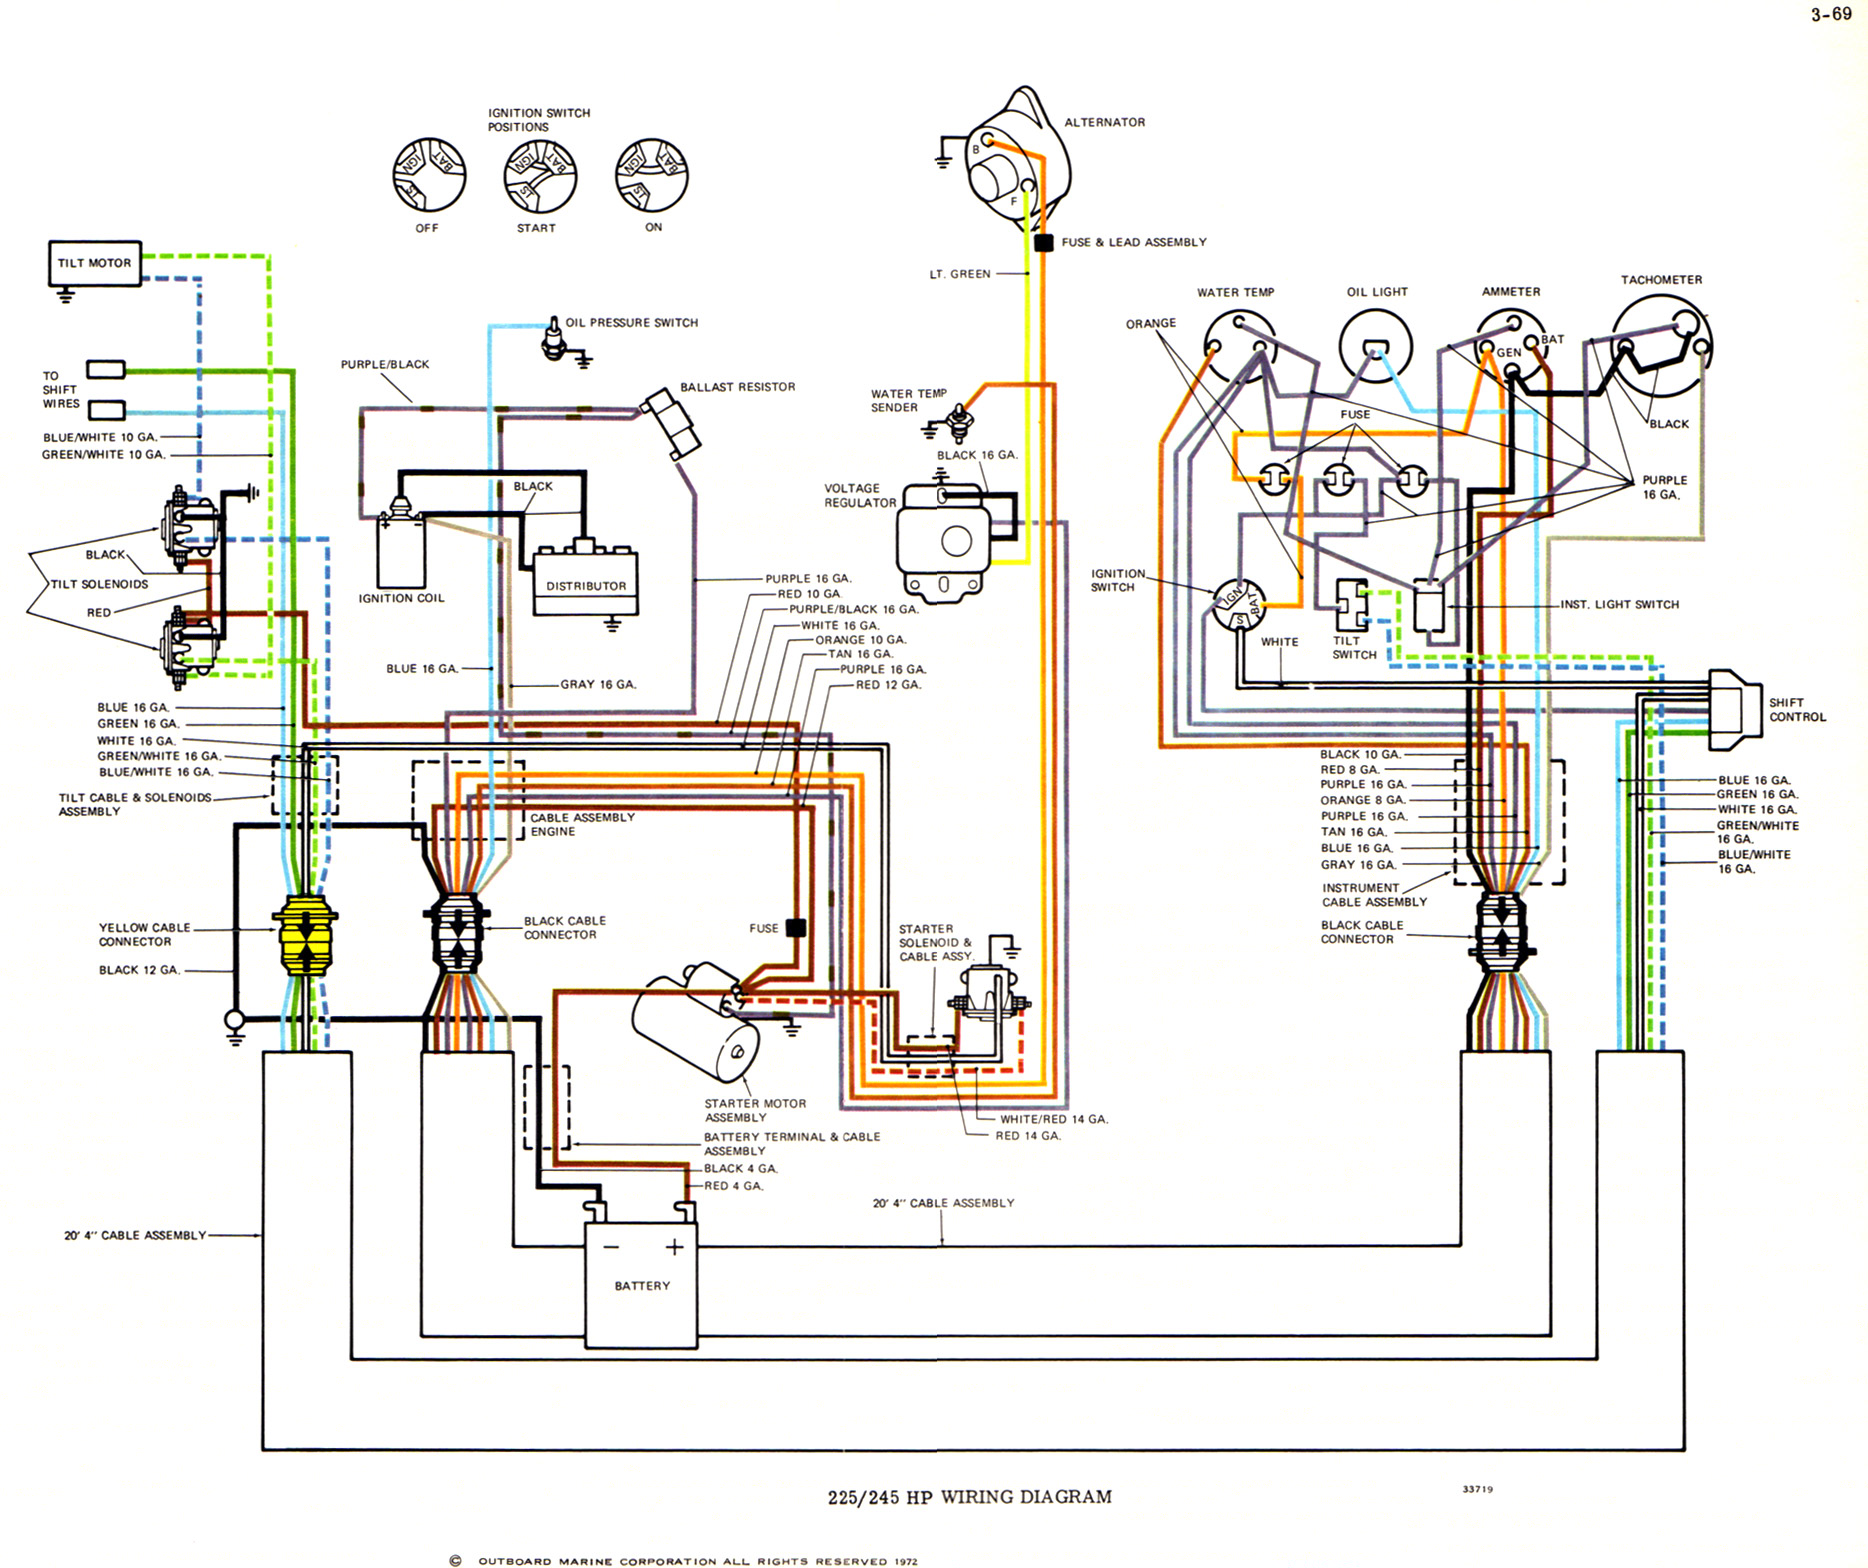 73_OMC_V8_all_big omc wiring harness diagram johmson wiring harness \u2022 wiring  at edmiracle.co